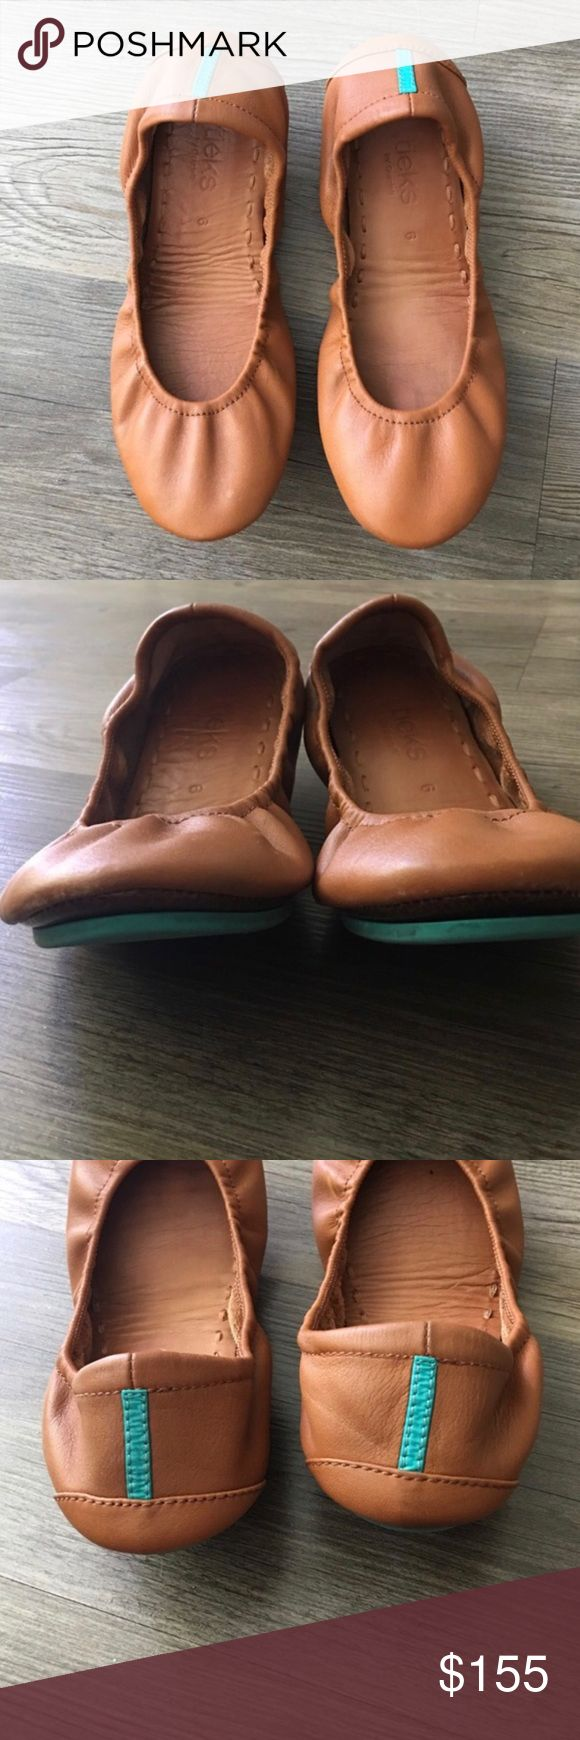 Chestnut Tieks Chestnut leather Tieks. In very good condition. Price is firm on here. Can sell for less on other platforms. Tieks Shoes